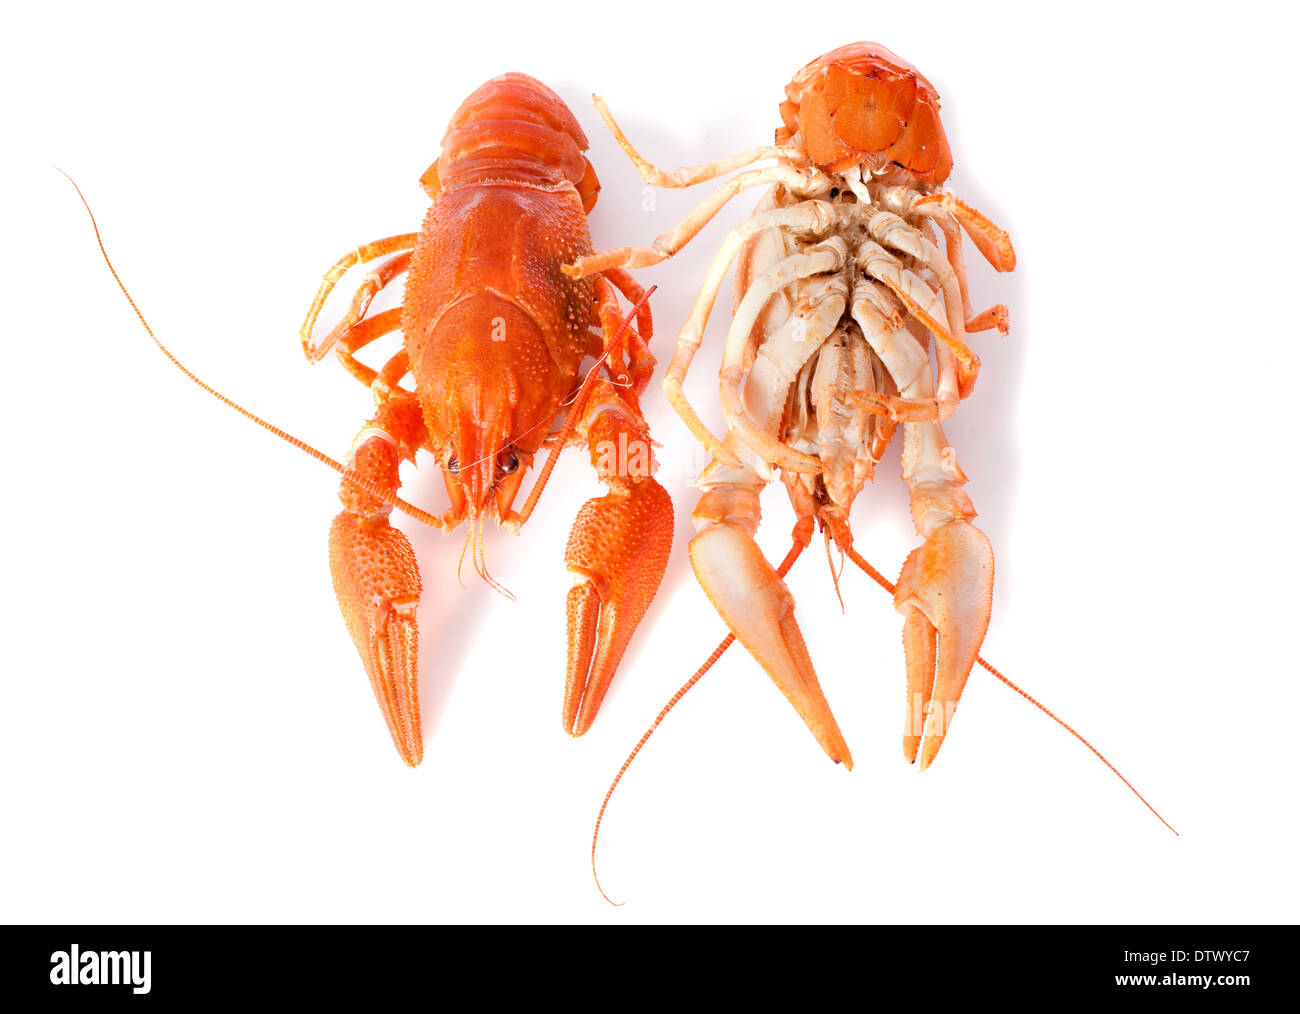 river crayfish in front of white background - Stock Image